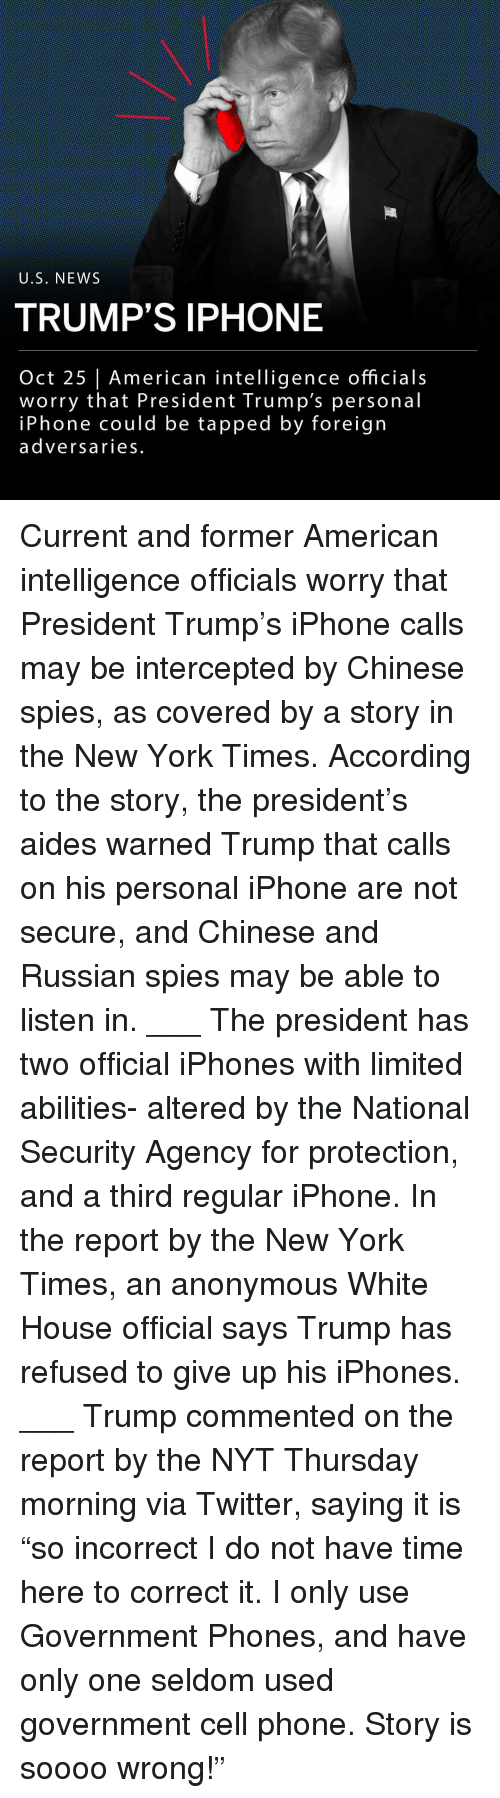 """Iphone, Memes, and New York: U.S, NEWS  TRUMP'S IPHONE  Oct 25   American intelligence officials  worry that President Trump's personal  iPhone could be tapped by foreign  adversaries. Current and former American intelligence officials worry that President Trump's iPhone calls may be intercepted by Chinese spies, as covered by a story in the New York Times. According to the story, the president's aides warned Trump that calls on his personal iPhone are not secure, and Chinese and Russian spies may be able to listen in. ___ The president has two official iPhones with limited abilities- altered by the National Security Agency for protection, and a third regular iPhone. In the report by the New York Times, an anonymous White House official says Trump has refused to give up his iPhones. ___ Trump commented on the report by the NYT Thursday morning via Twitter, saying it is """"so incorrect I do not have time here to correct it. I only use Government Phones, and have only one seldom used government cell phone. Story is soooo wrong!"""""""